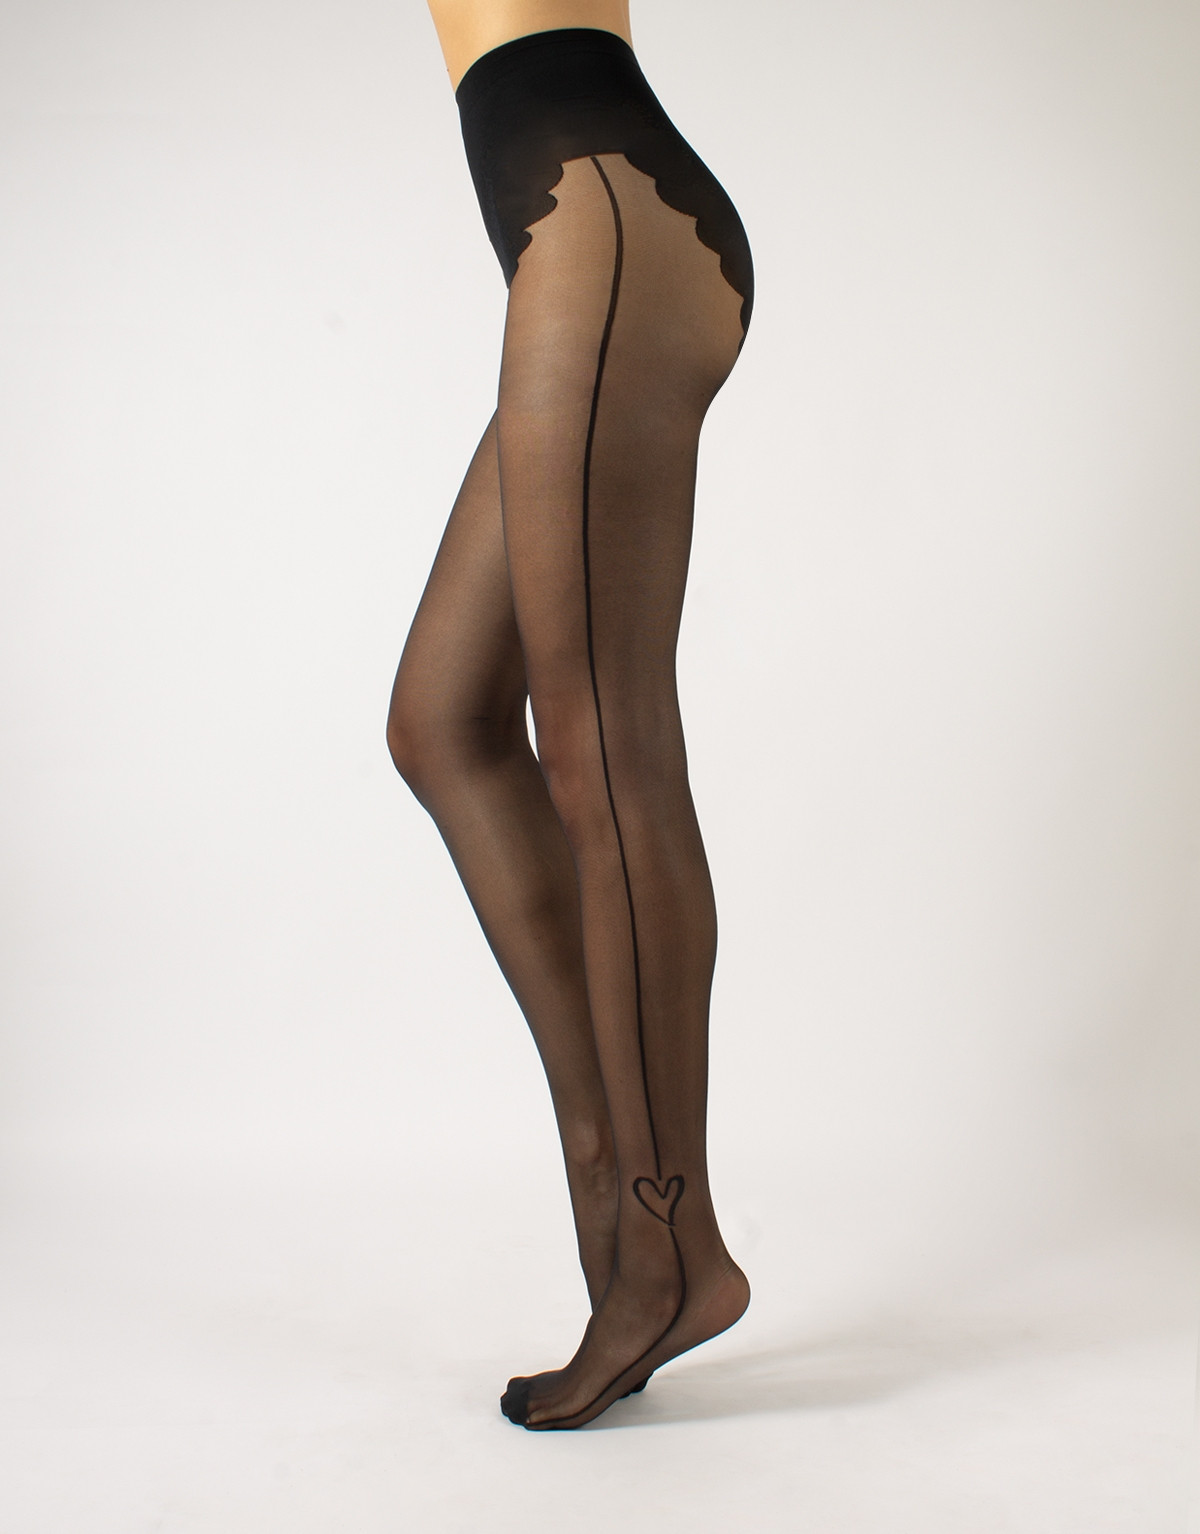 SHEER TIGHTS WITH SIDE LINE AND HEART - 20 DEN